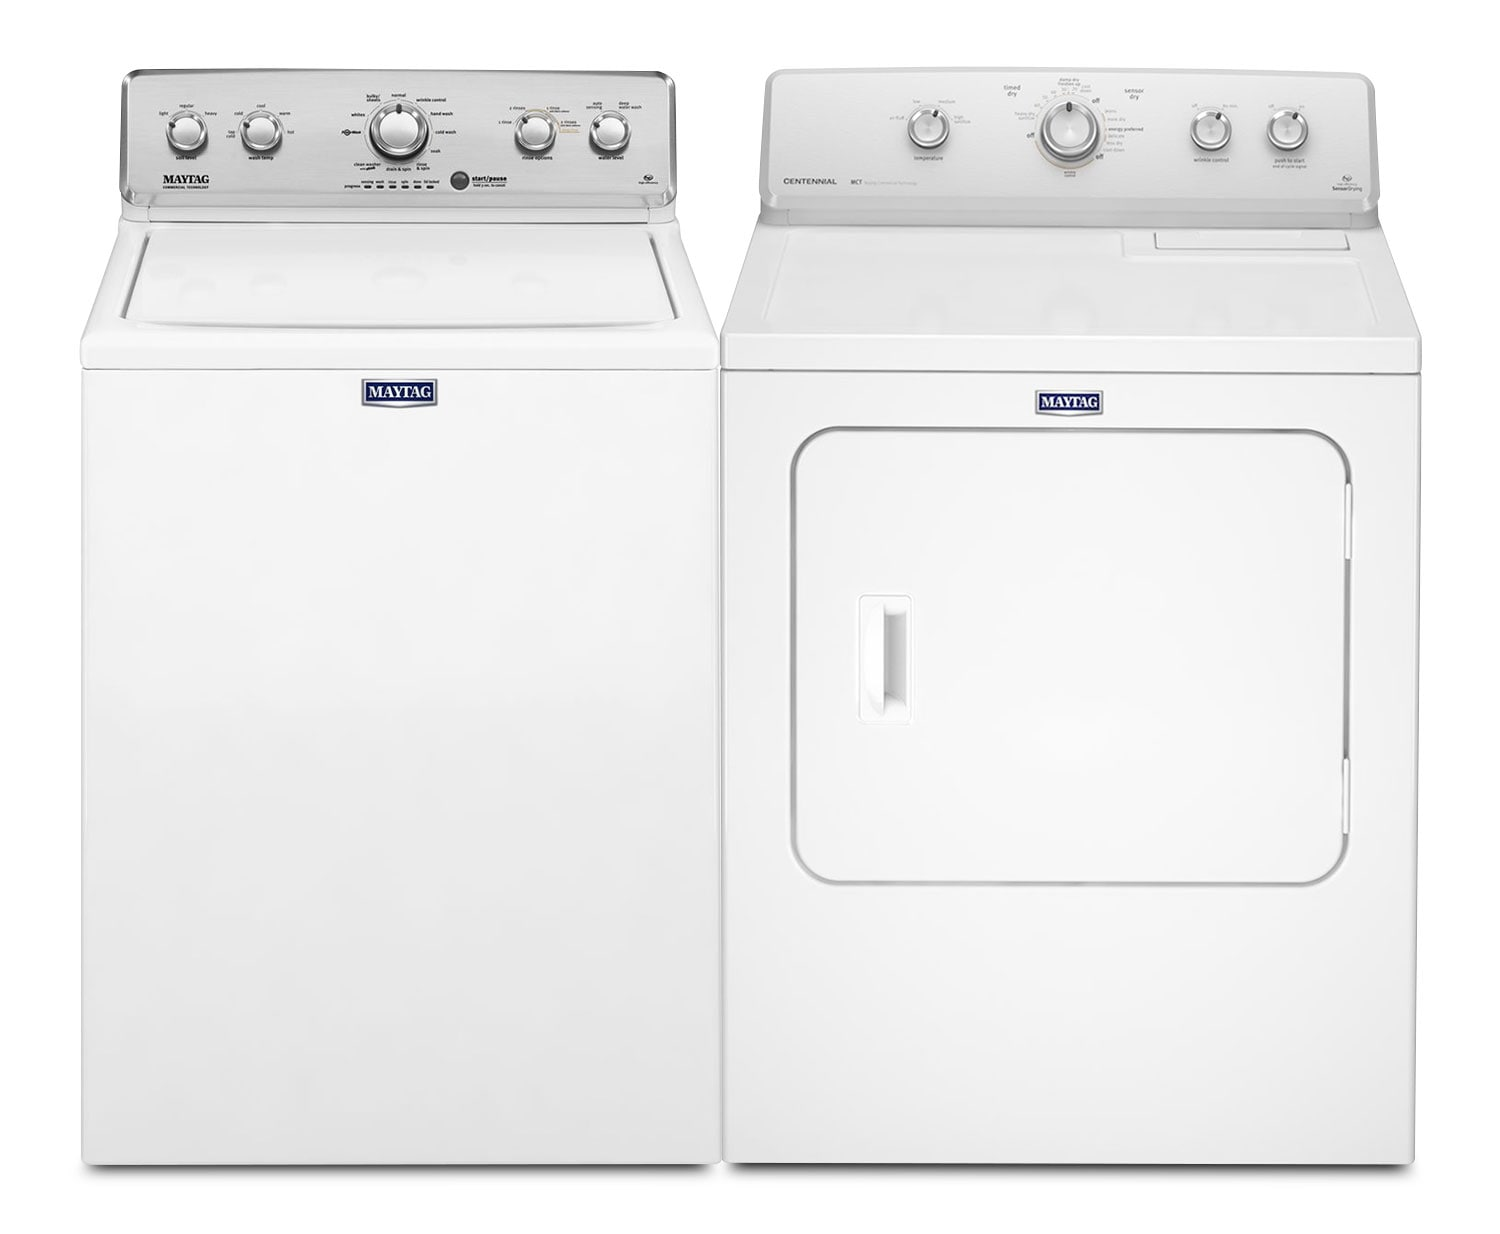 Washers and Dryers - Maytag 3.6 Cu. Ft. Top-Load Washer and 7.0 Cu. Ft. Electric Dryer – White